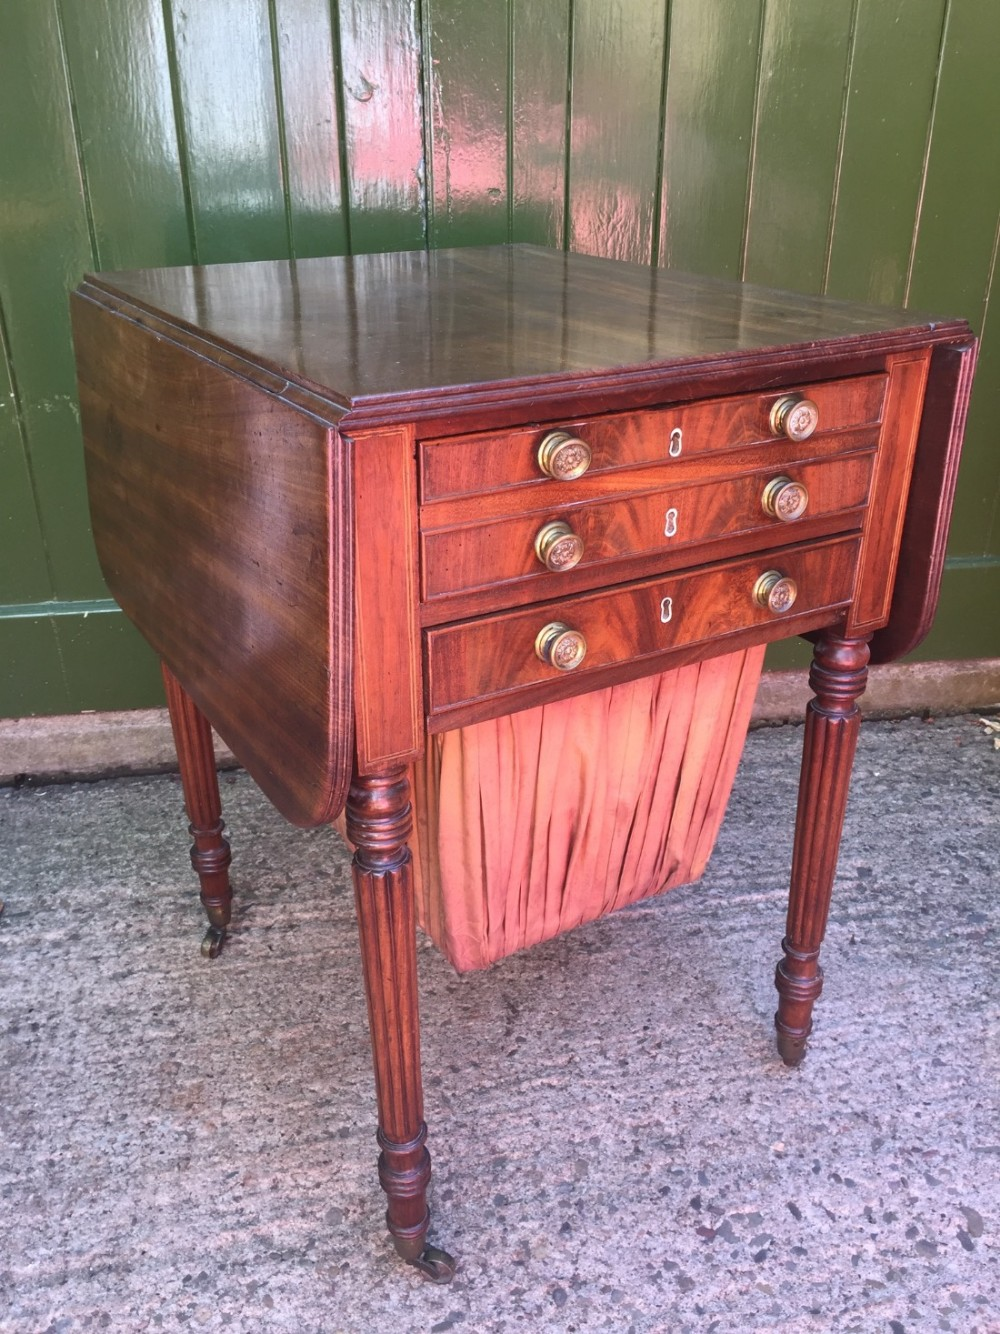 early c19th regency period mahogany dropleaf pembroke sewing table with fitted writing drawer in the manner of gillows of lancaster